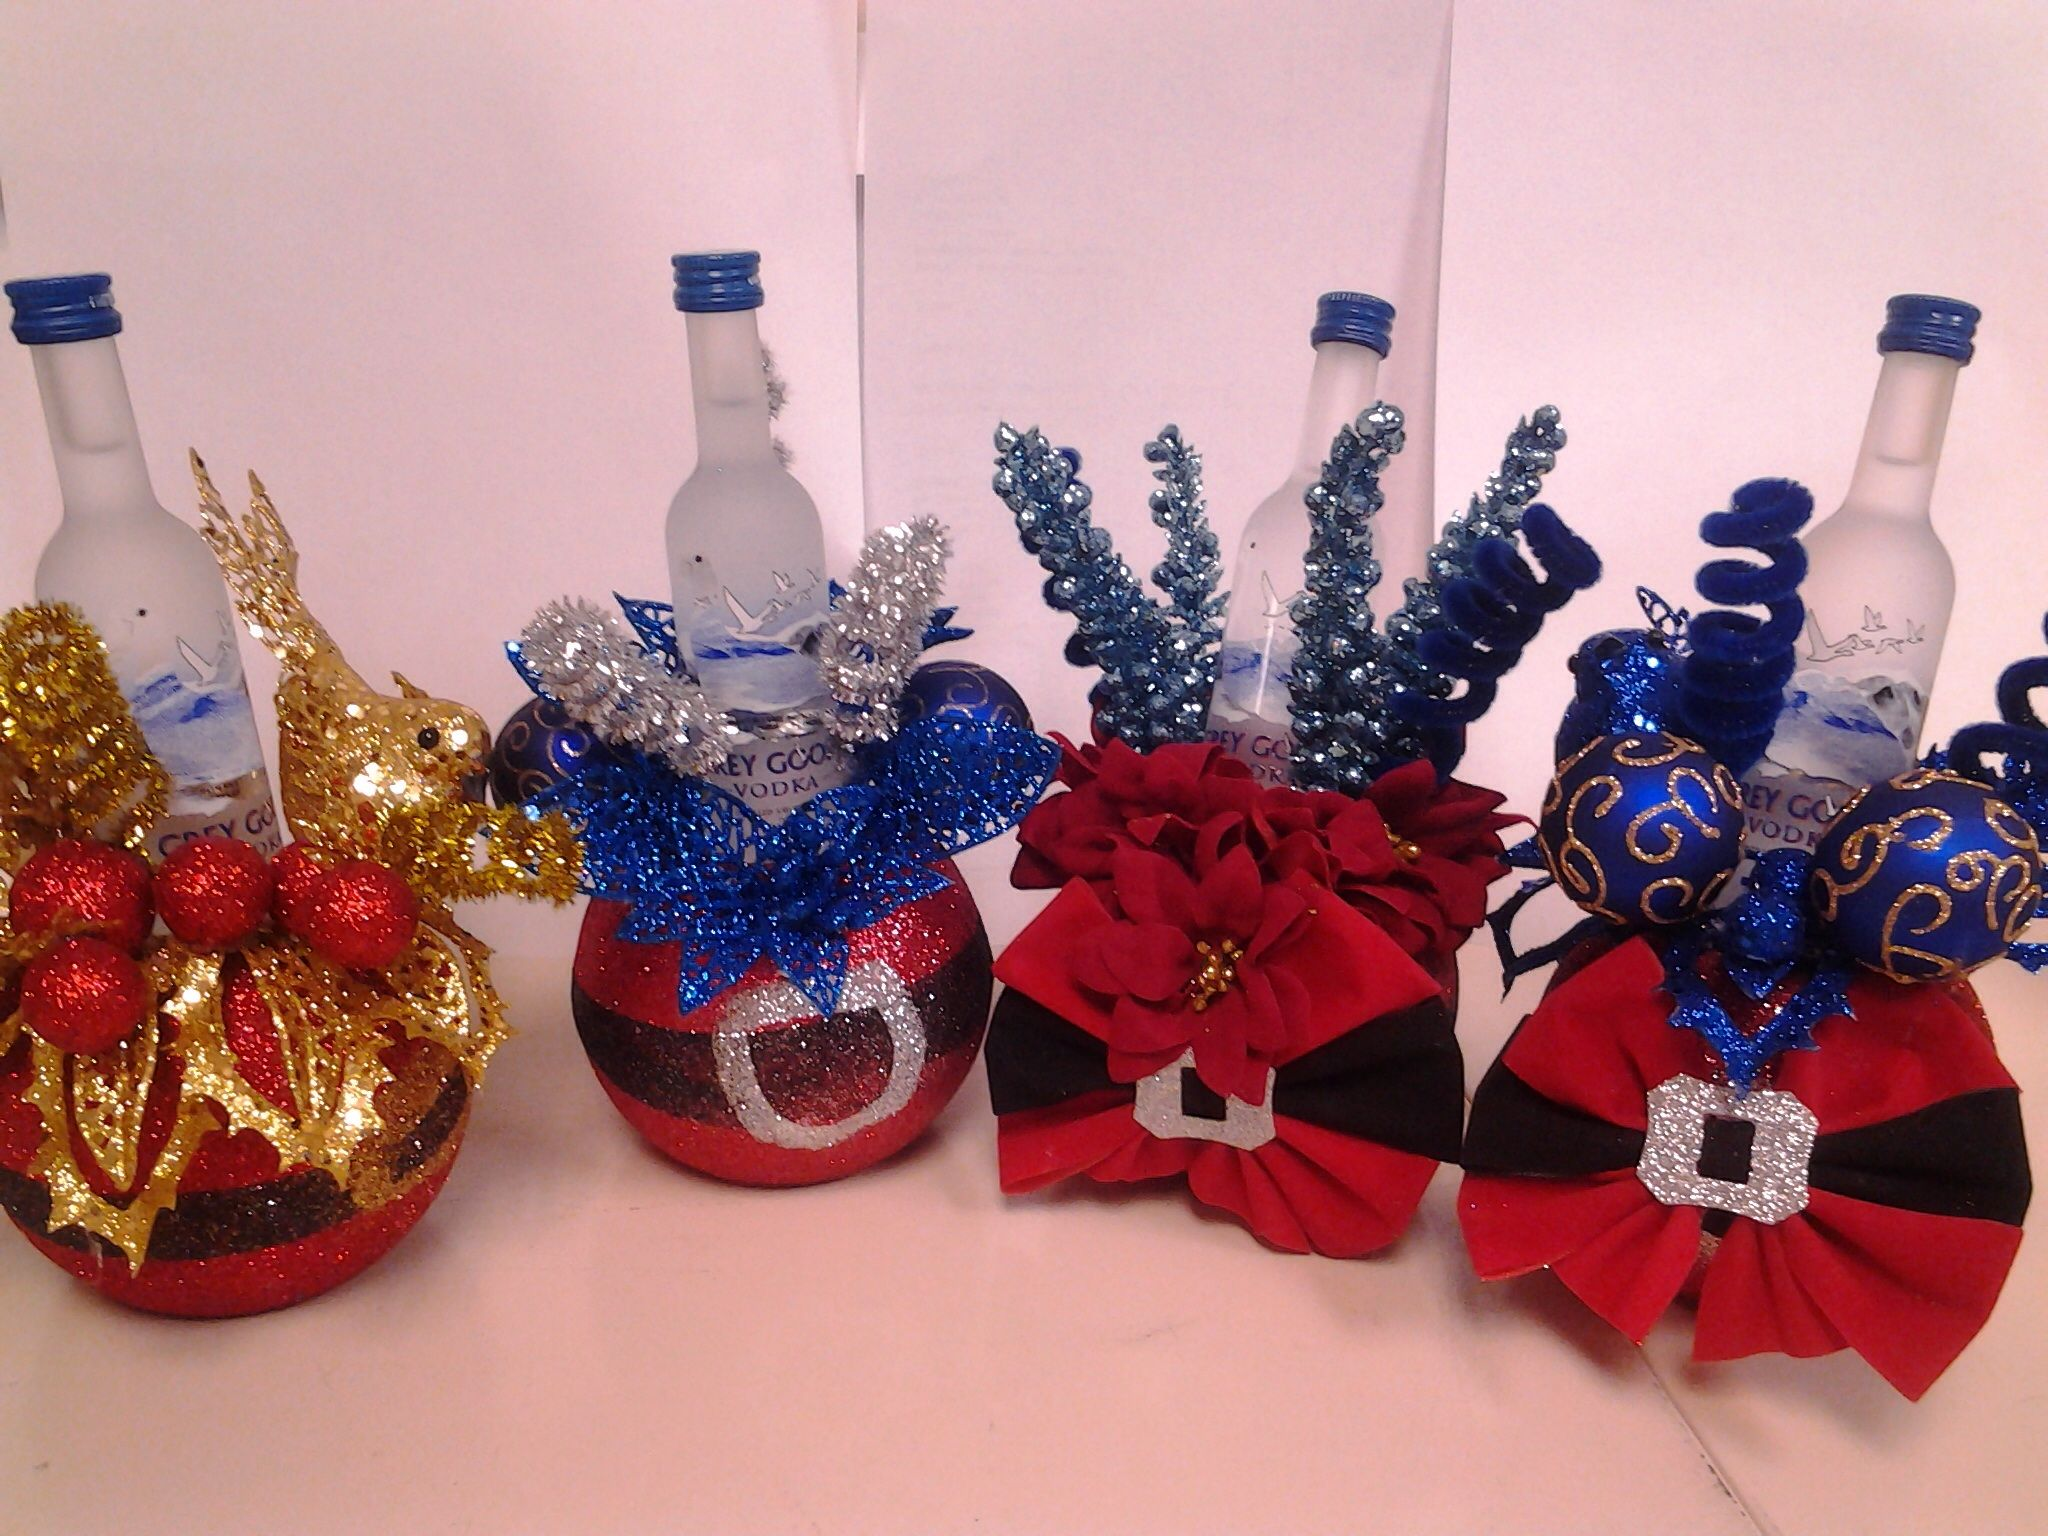 Mini grey goose holiday decorated as gift | Liquor gift ...